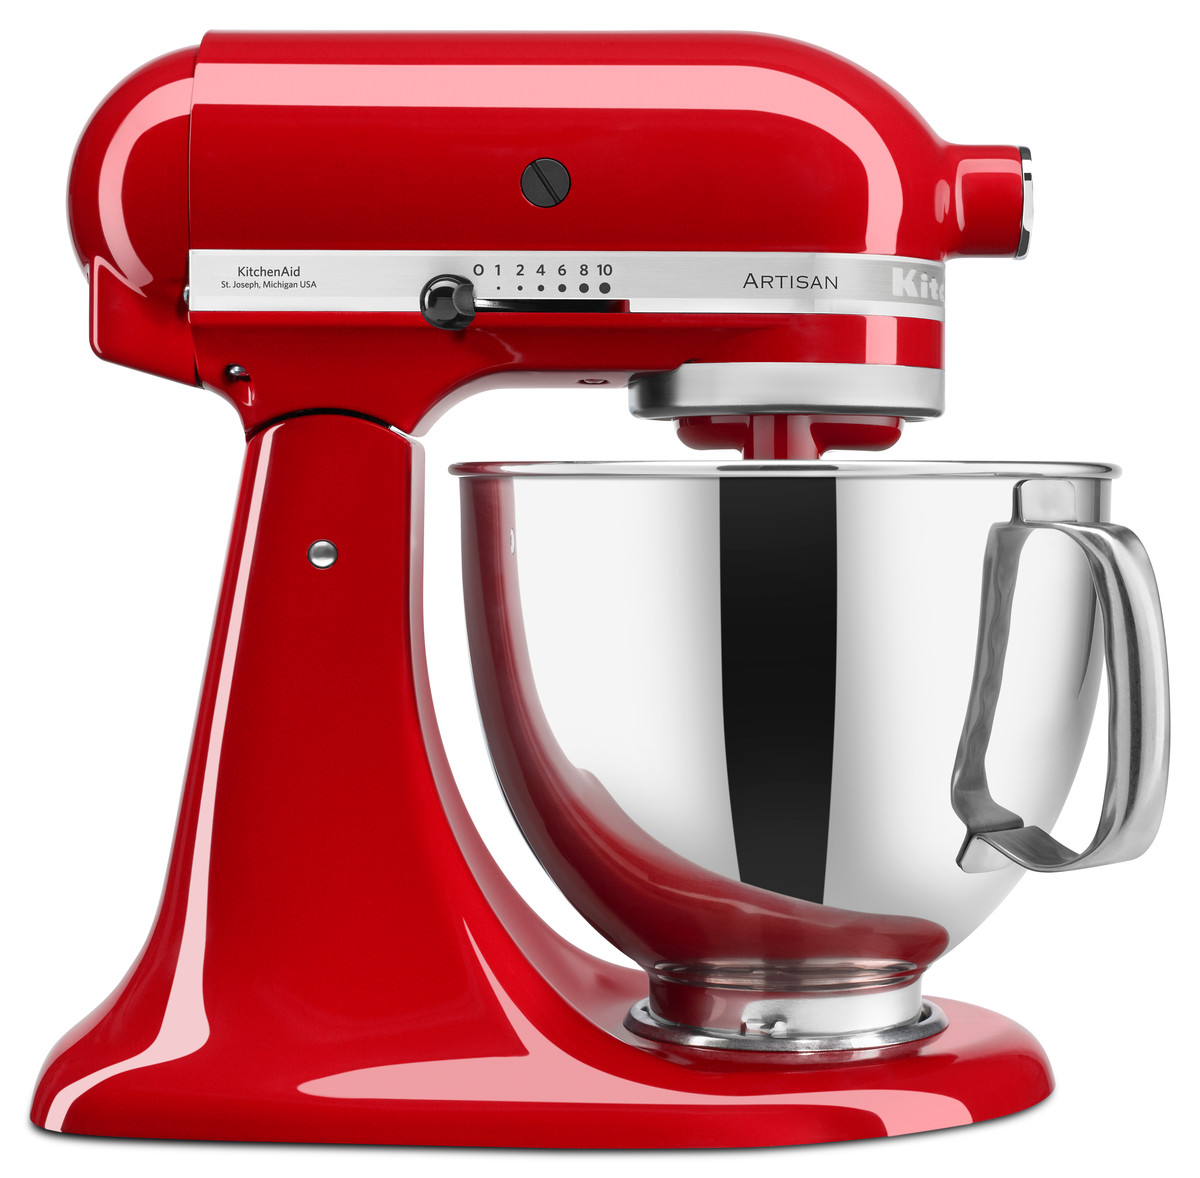 KitchenAid Artisan Küchenmaschine Vorteils-Set Black Friday